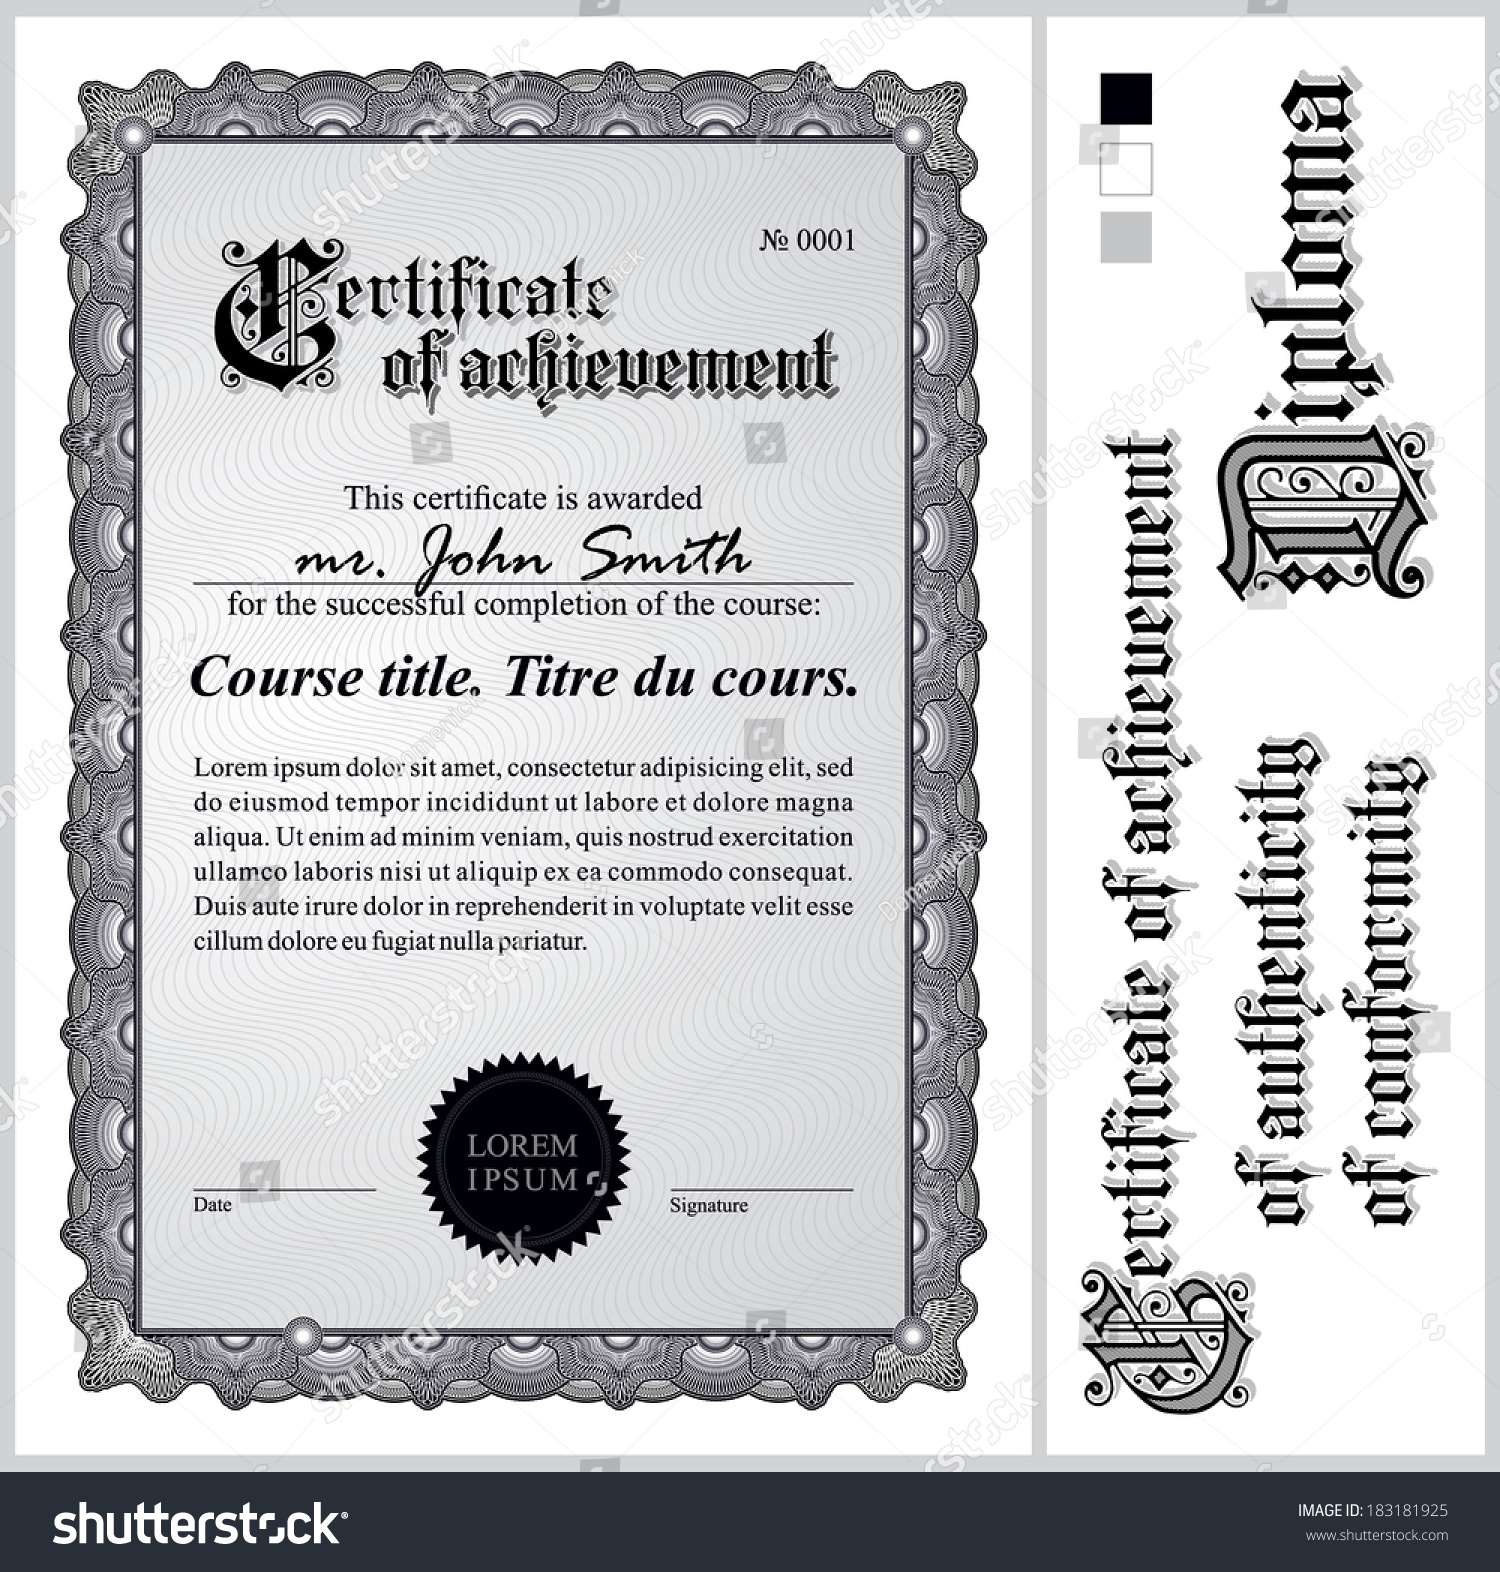 Specimen share certificate government nurse practitioner sample resume charming common stock certificate template photos resume ideas stock vector black and white certificate template vertical alramifo Image collections